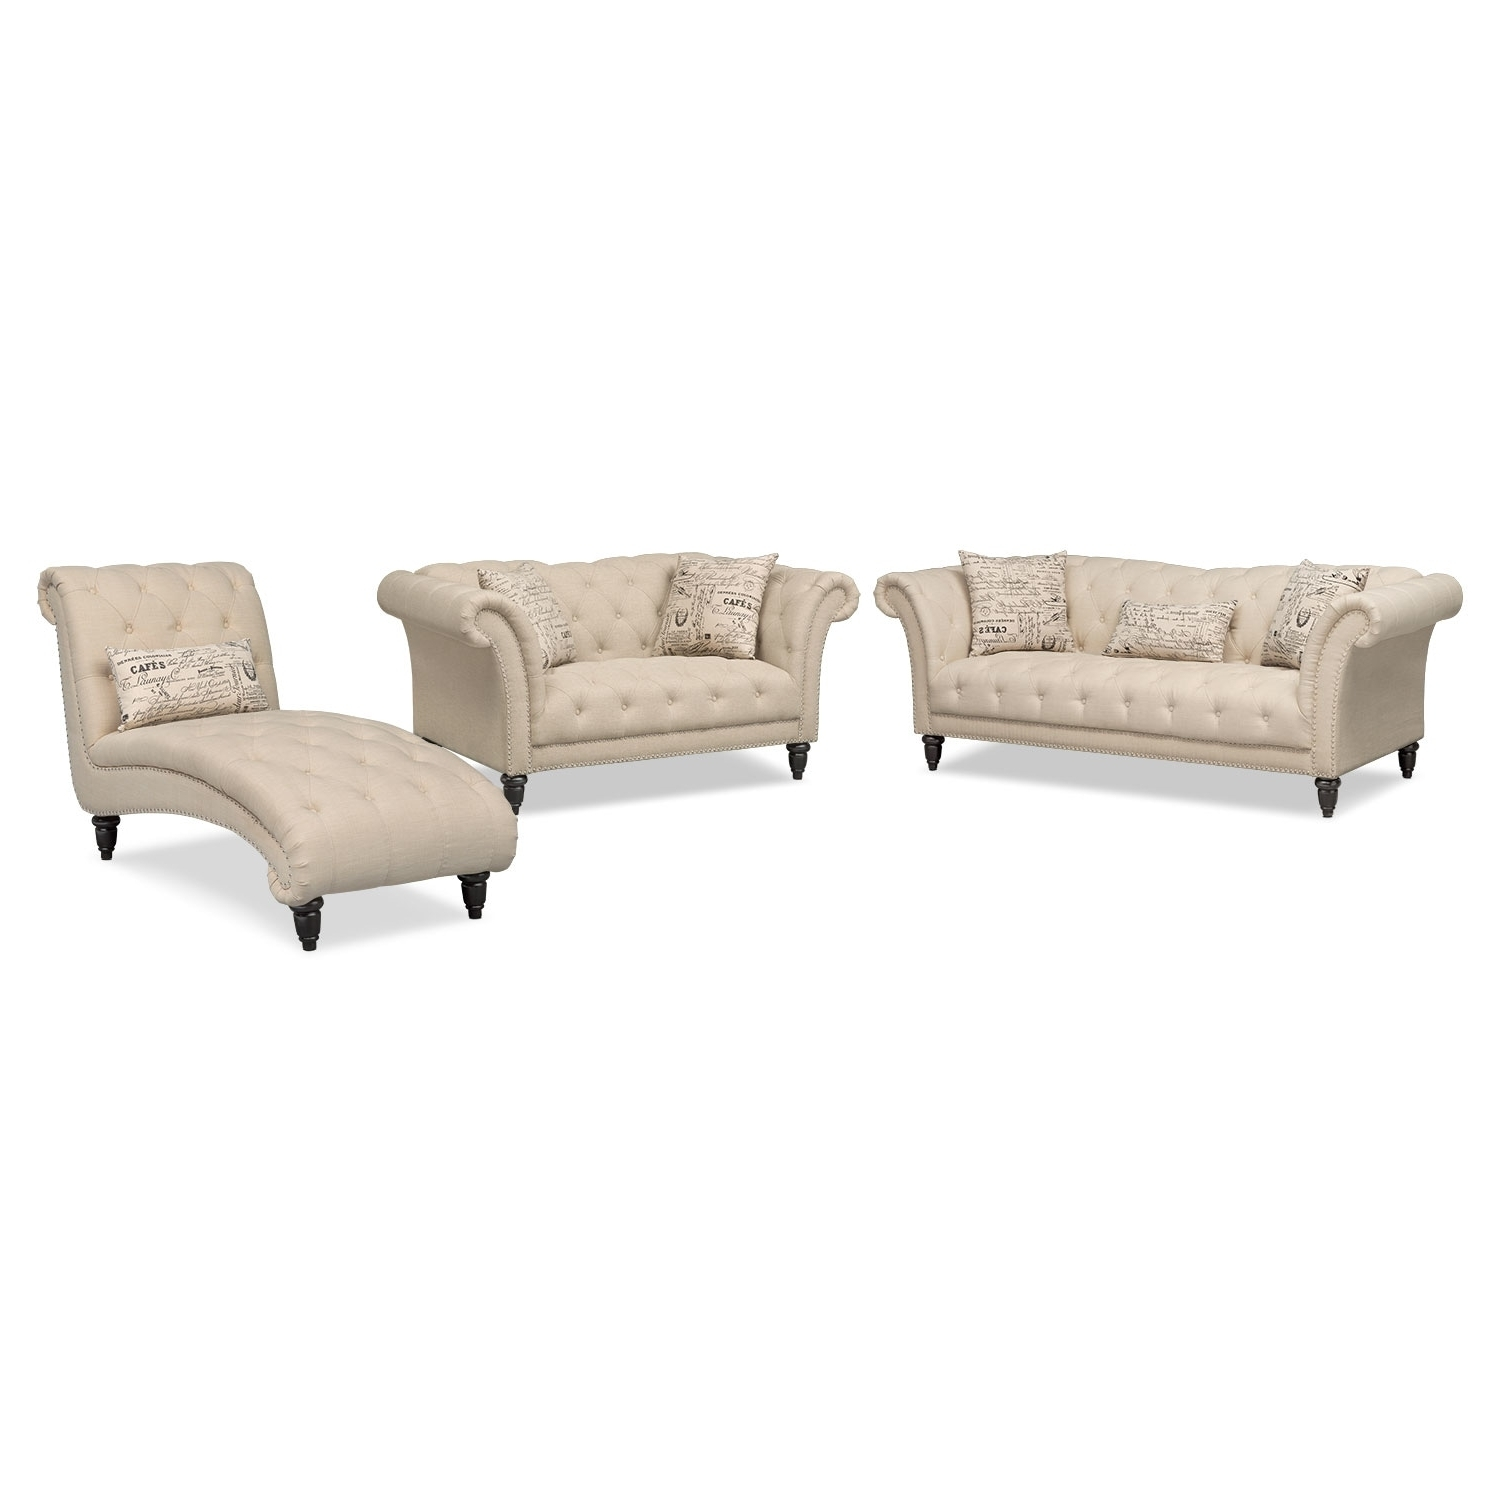 Marisol Sofa, Loveseat And Chaise Set – Beige (View 10 of 15)